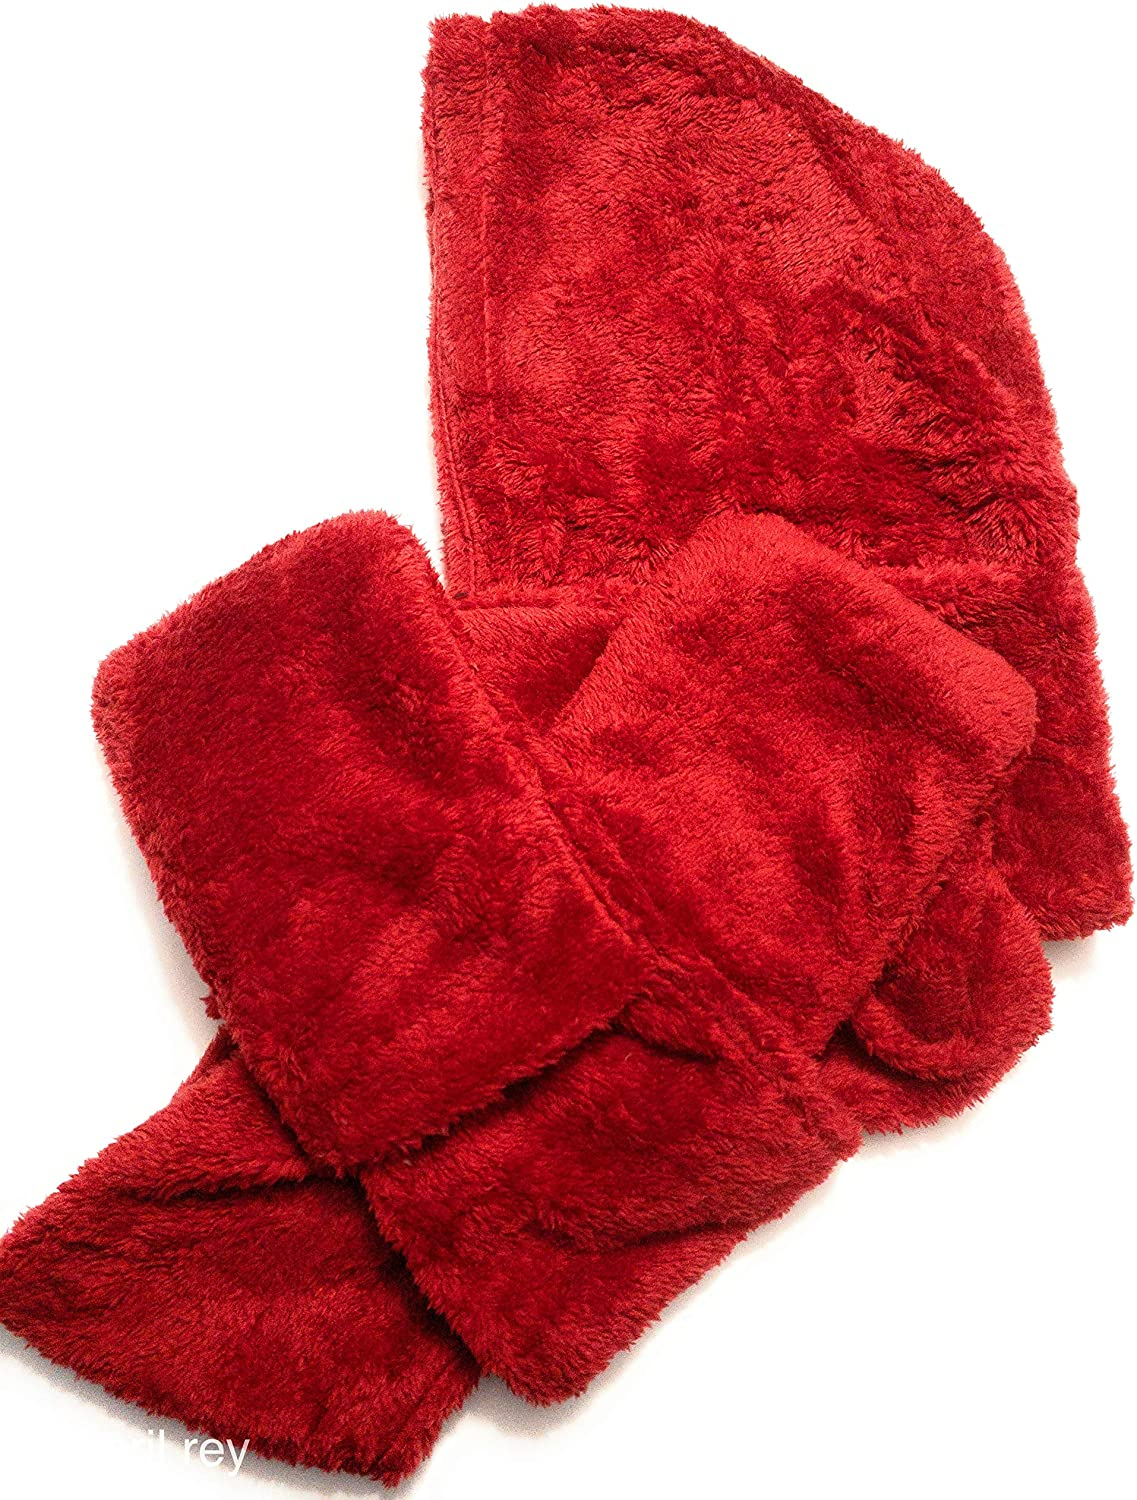 Gadgeteir Winter warm soft thick shawls scarf hoodie with gloves like pockets sets to warm your hands or a place to put your phone or keys, also comes with color- RED, Medium